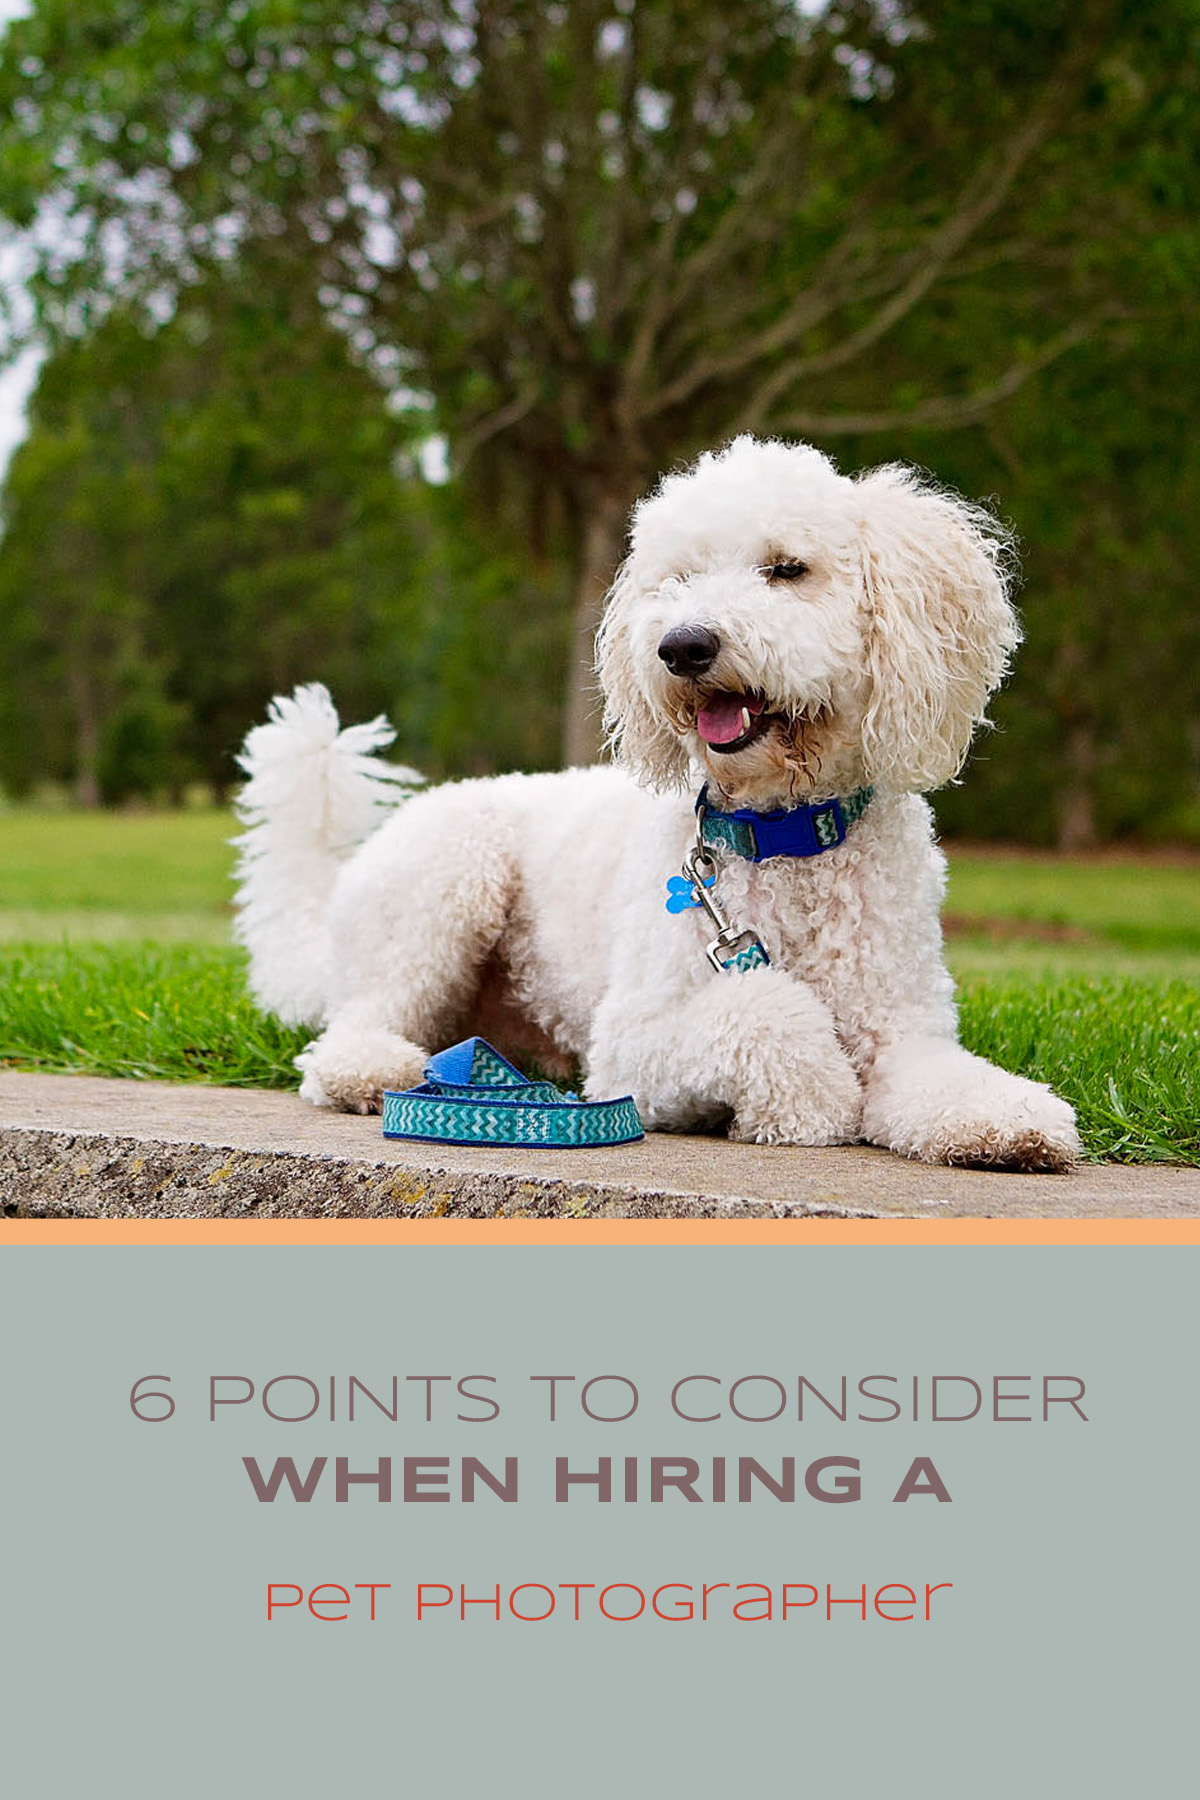 6 Points to Consider When Hiring a Pet Photographer